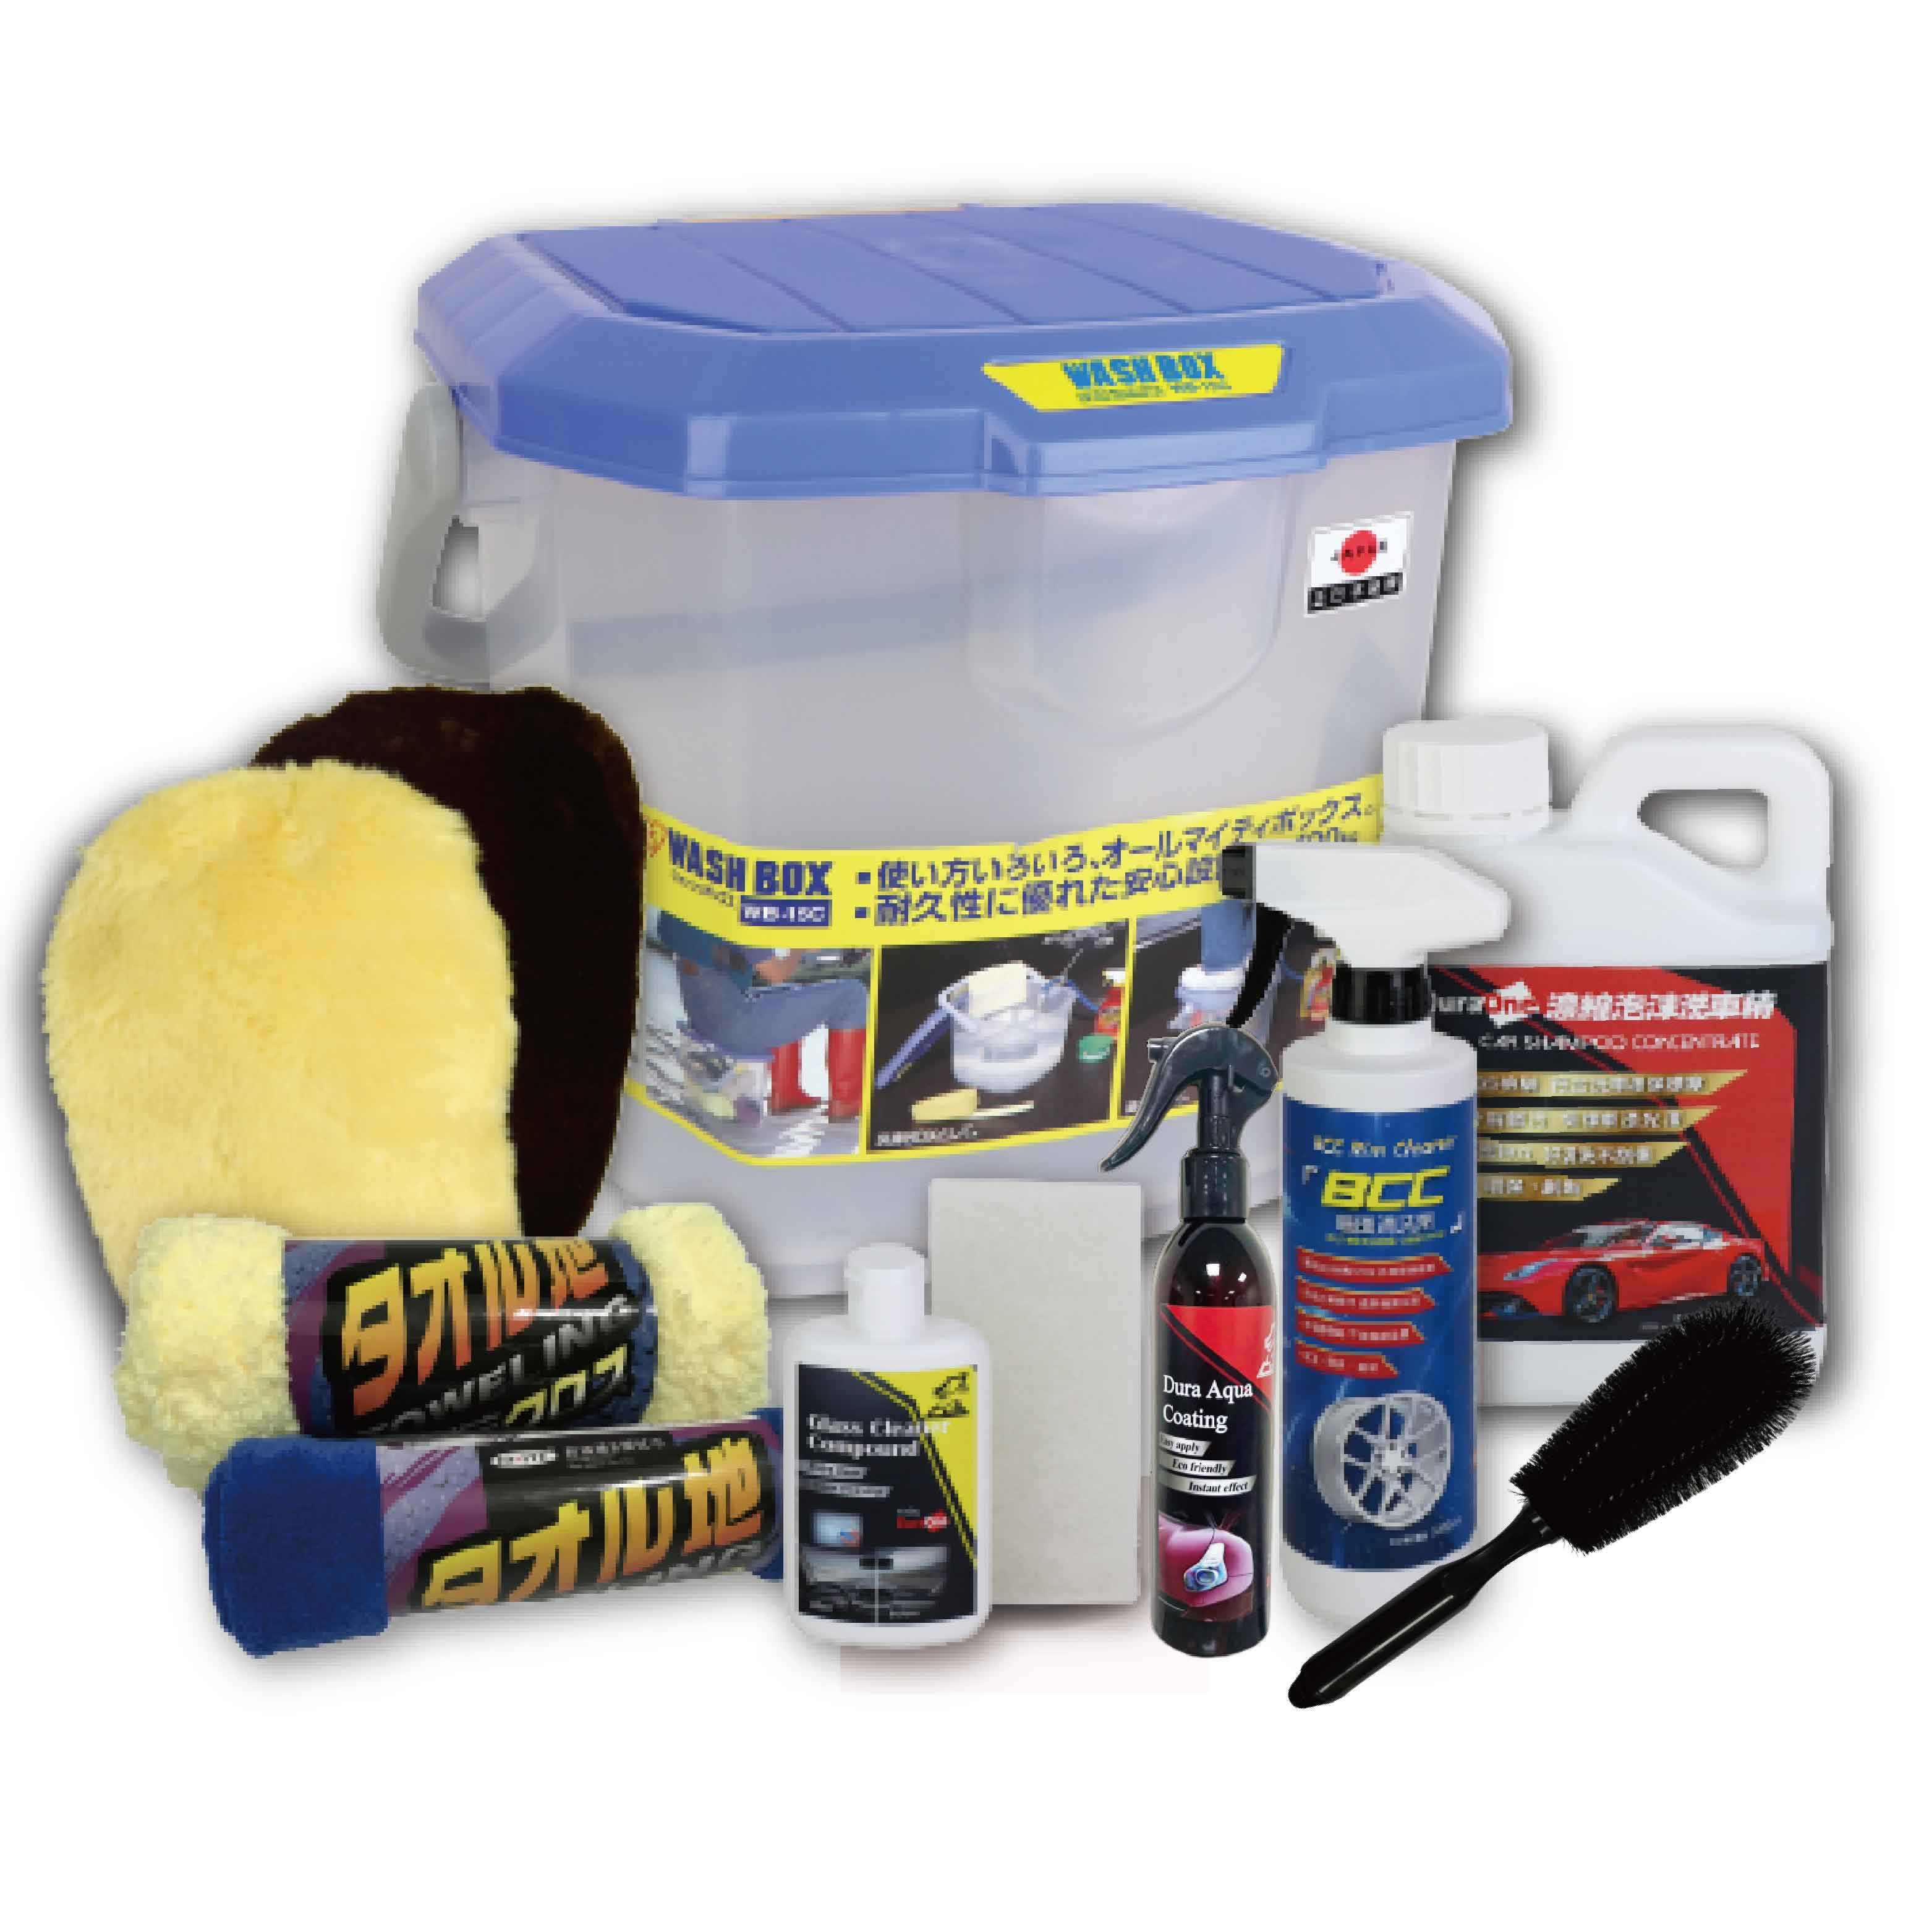 Car Care <span class=keywords><strong>Set</strong></span> Cleaning <span class=keywords><strong>Wassen</strong></span> Care <span class=keywords><strong>Tool</strong></span> Kit Microfiber <span class=keywords><strong>Auto</strong></span> <span class=keywords><strong>Wassen</strong></span> Detaillering Kit Car Cleaning <span class=keywords><strong>Set</strong></span>